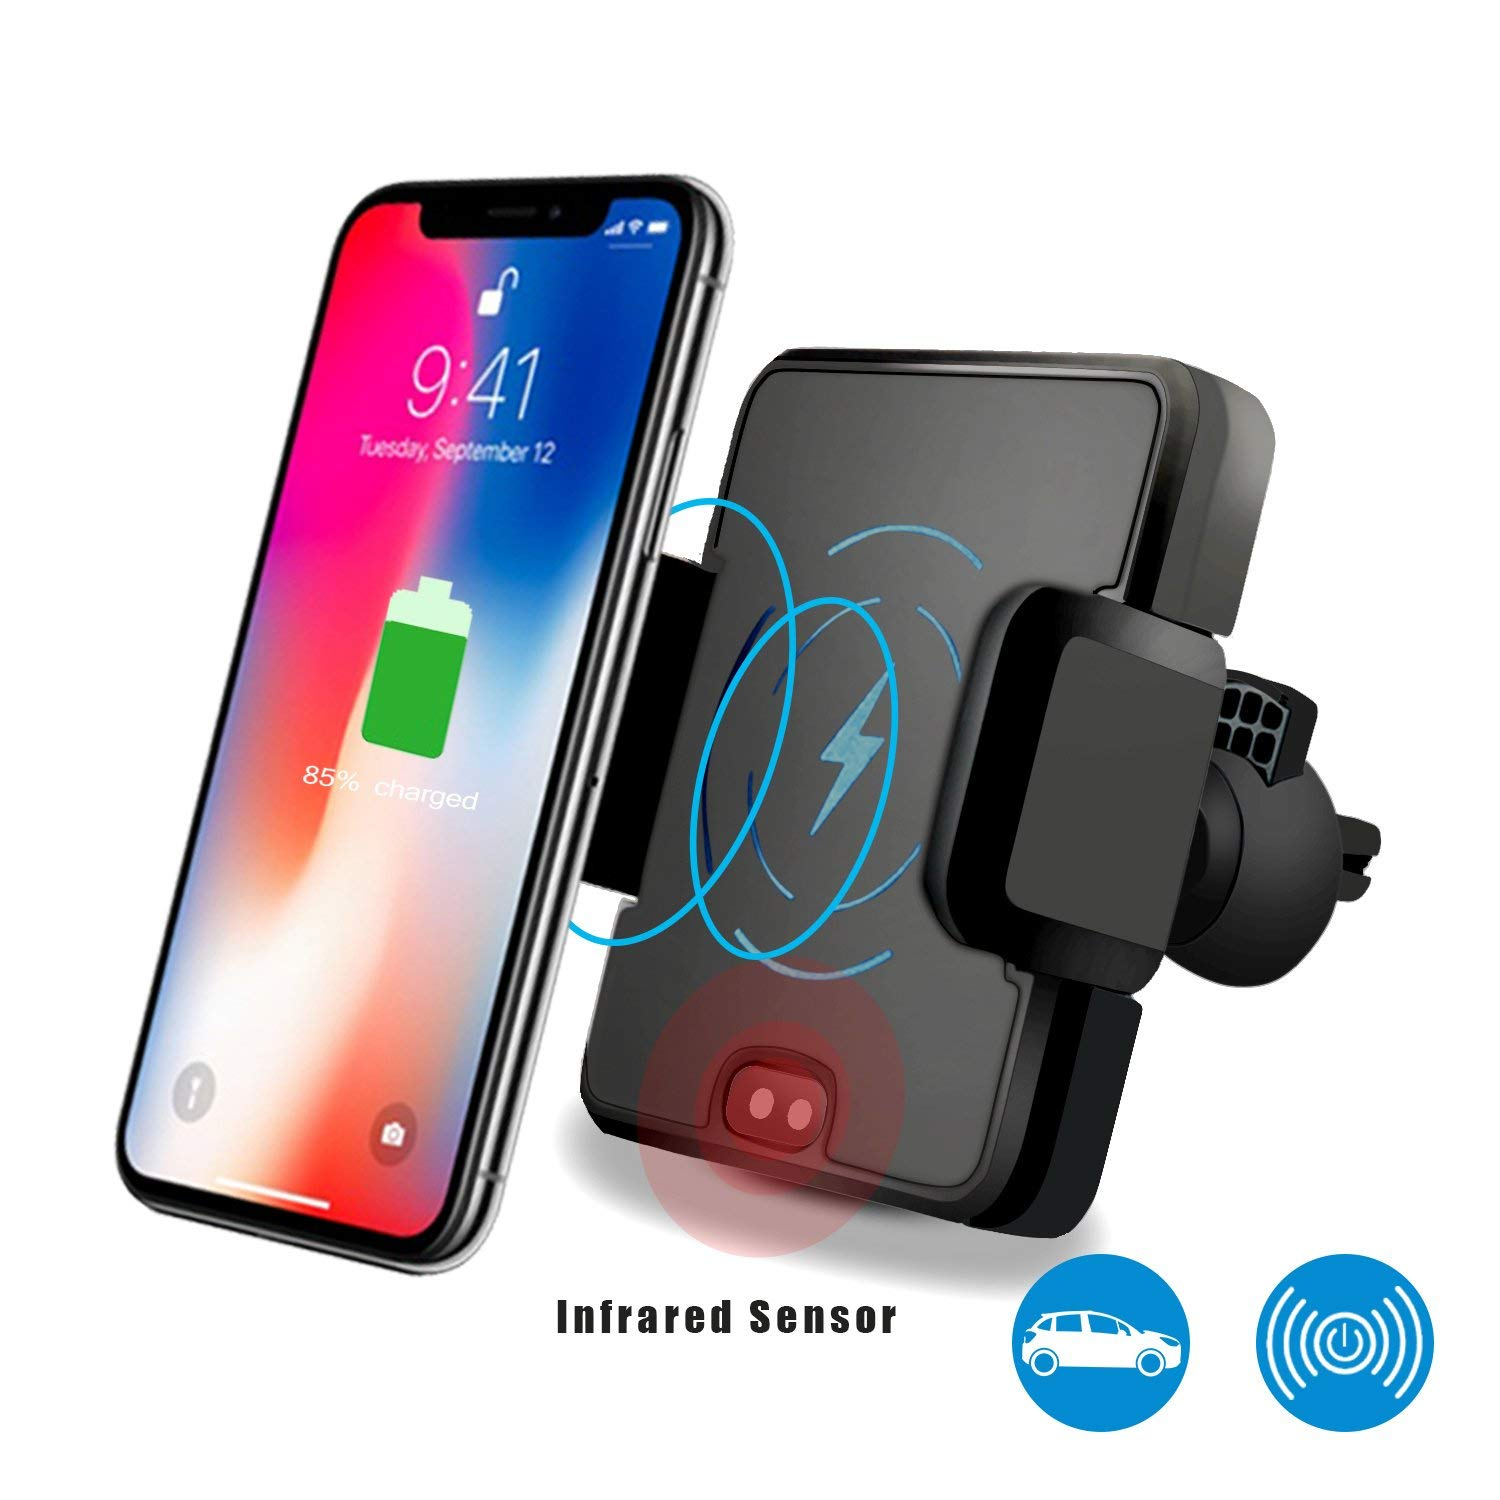 Wireless Car Charger Mount, Wireless Charger Car Holder, Automatic Infrared Sensor 2-in-1 Air Vent Bracket Phone Holder Gravity Car Mount Fast Charging MAXSHUANG